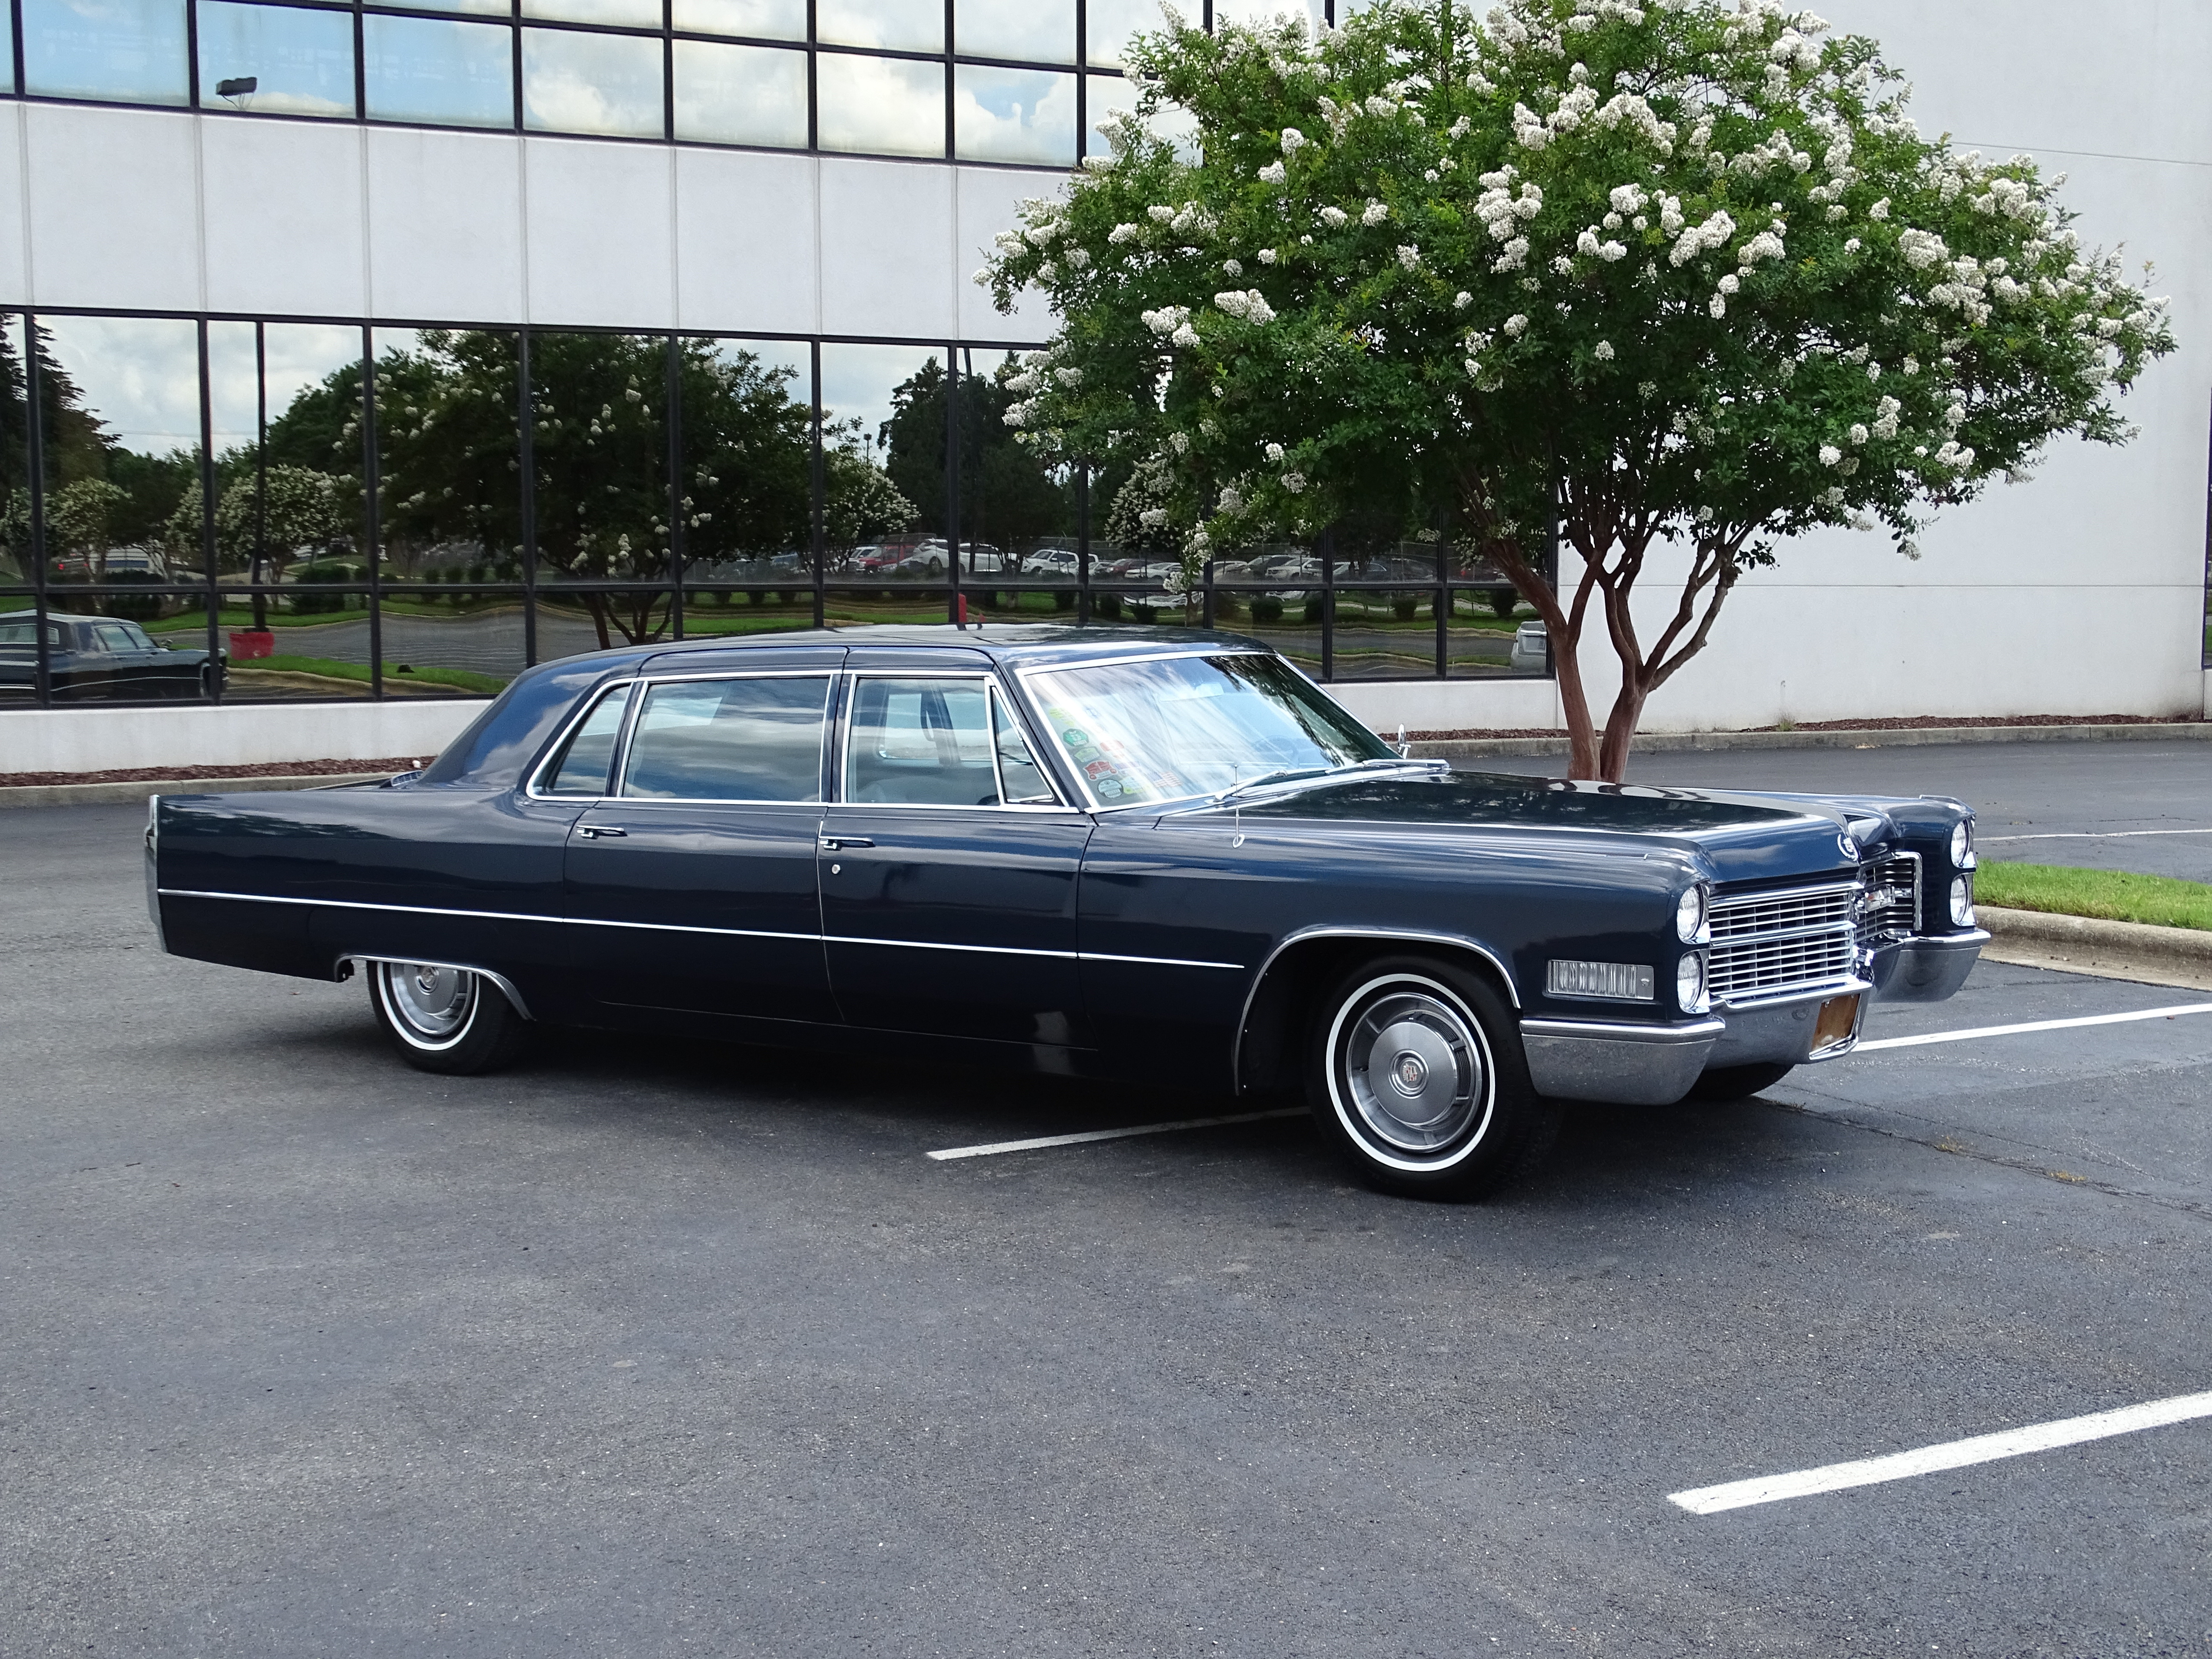 sale cadillac ft beach auction lauderdale by rupp collector available for car presented dave fleetwood